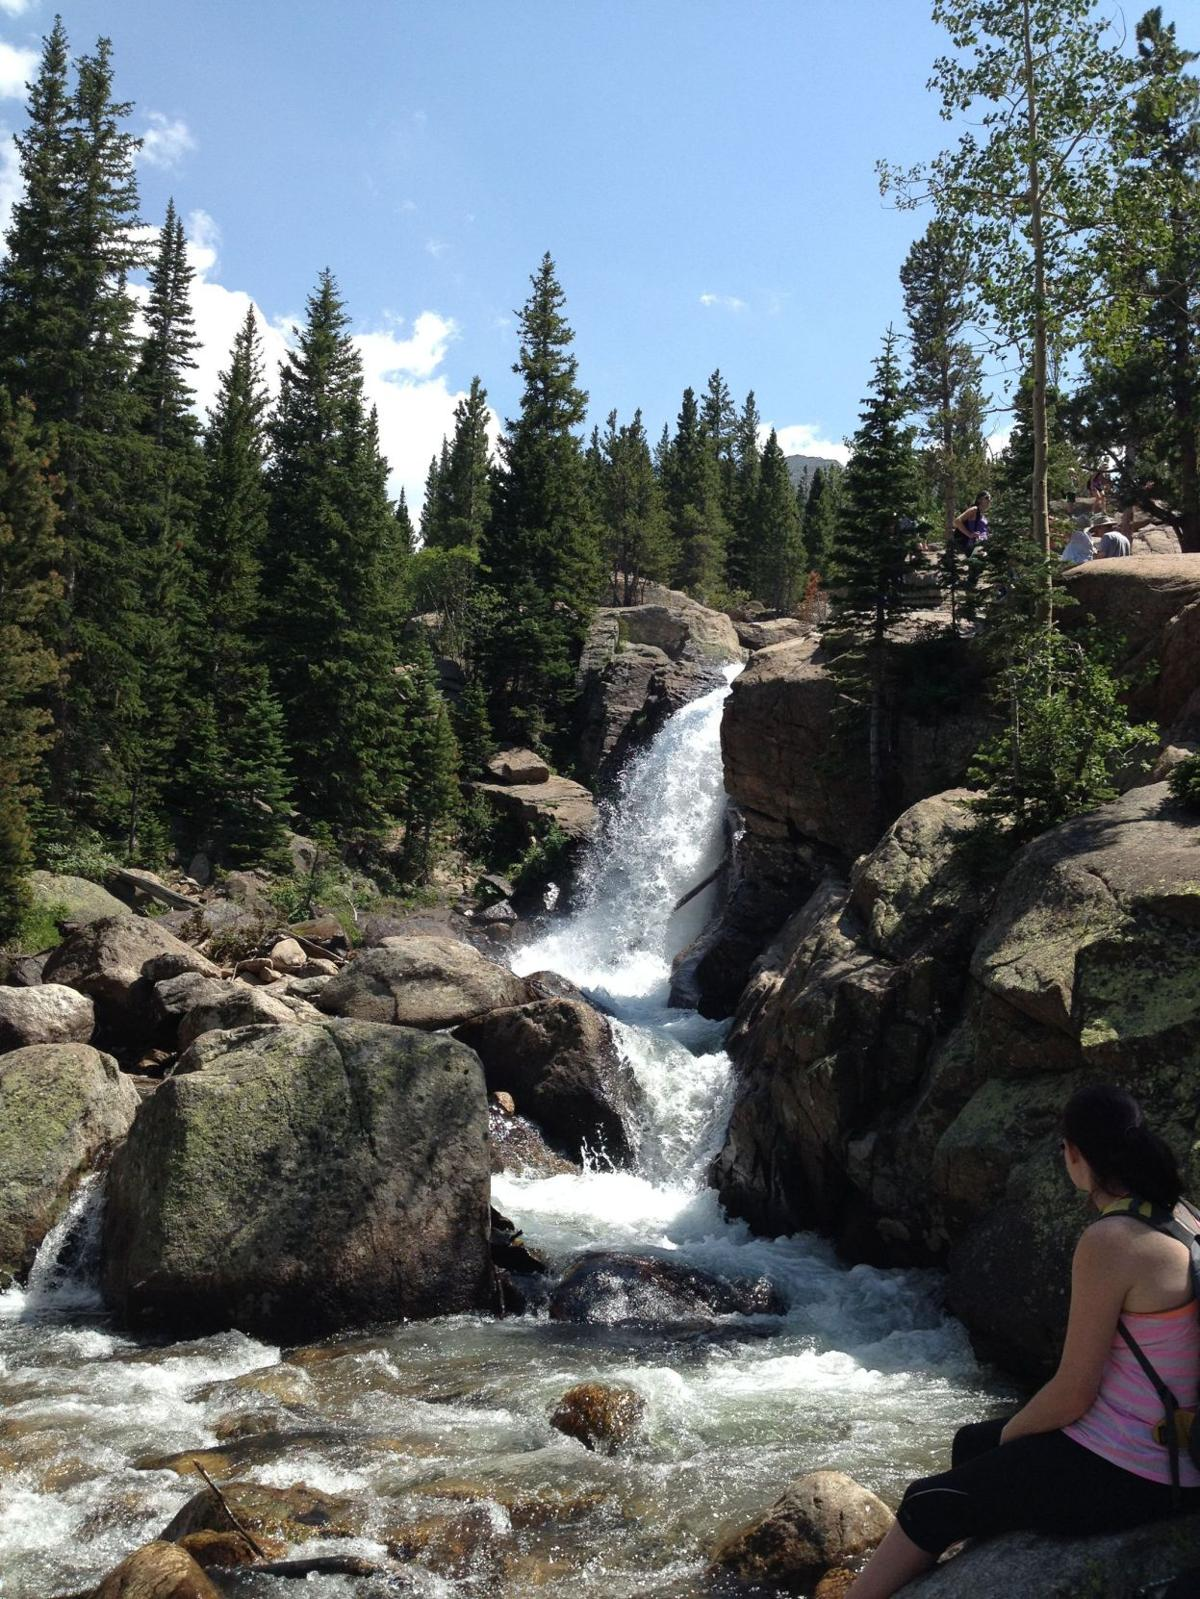 Celebrate Rocky Mountains' birthday with day hikes